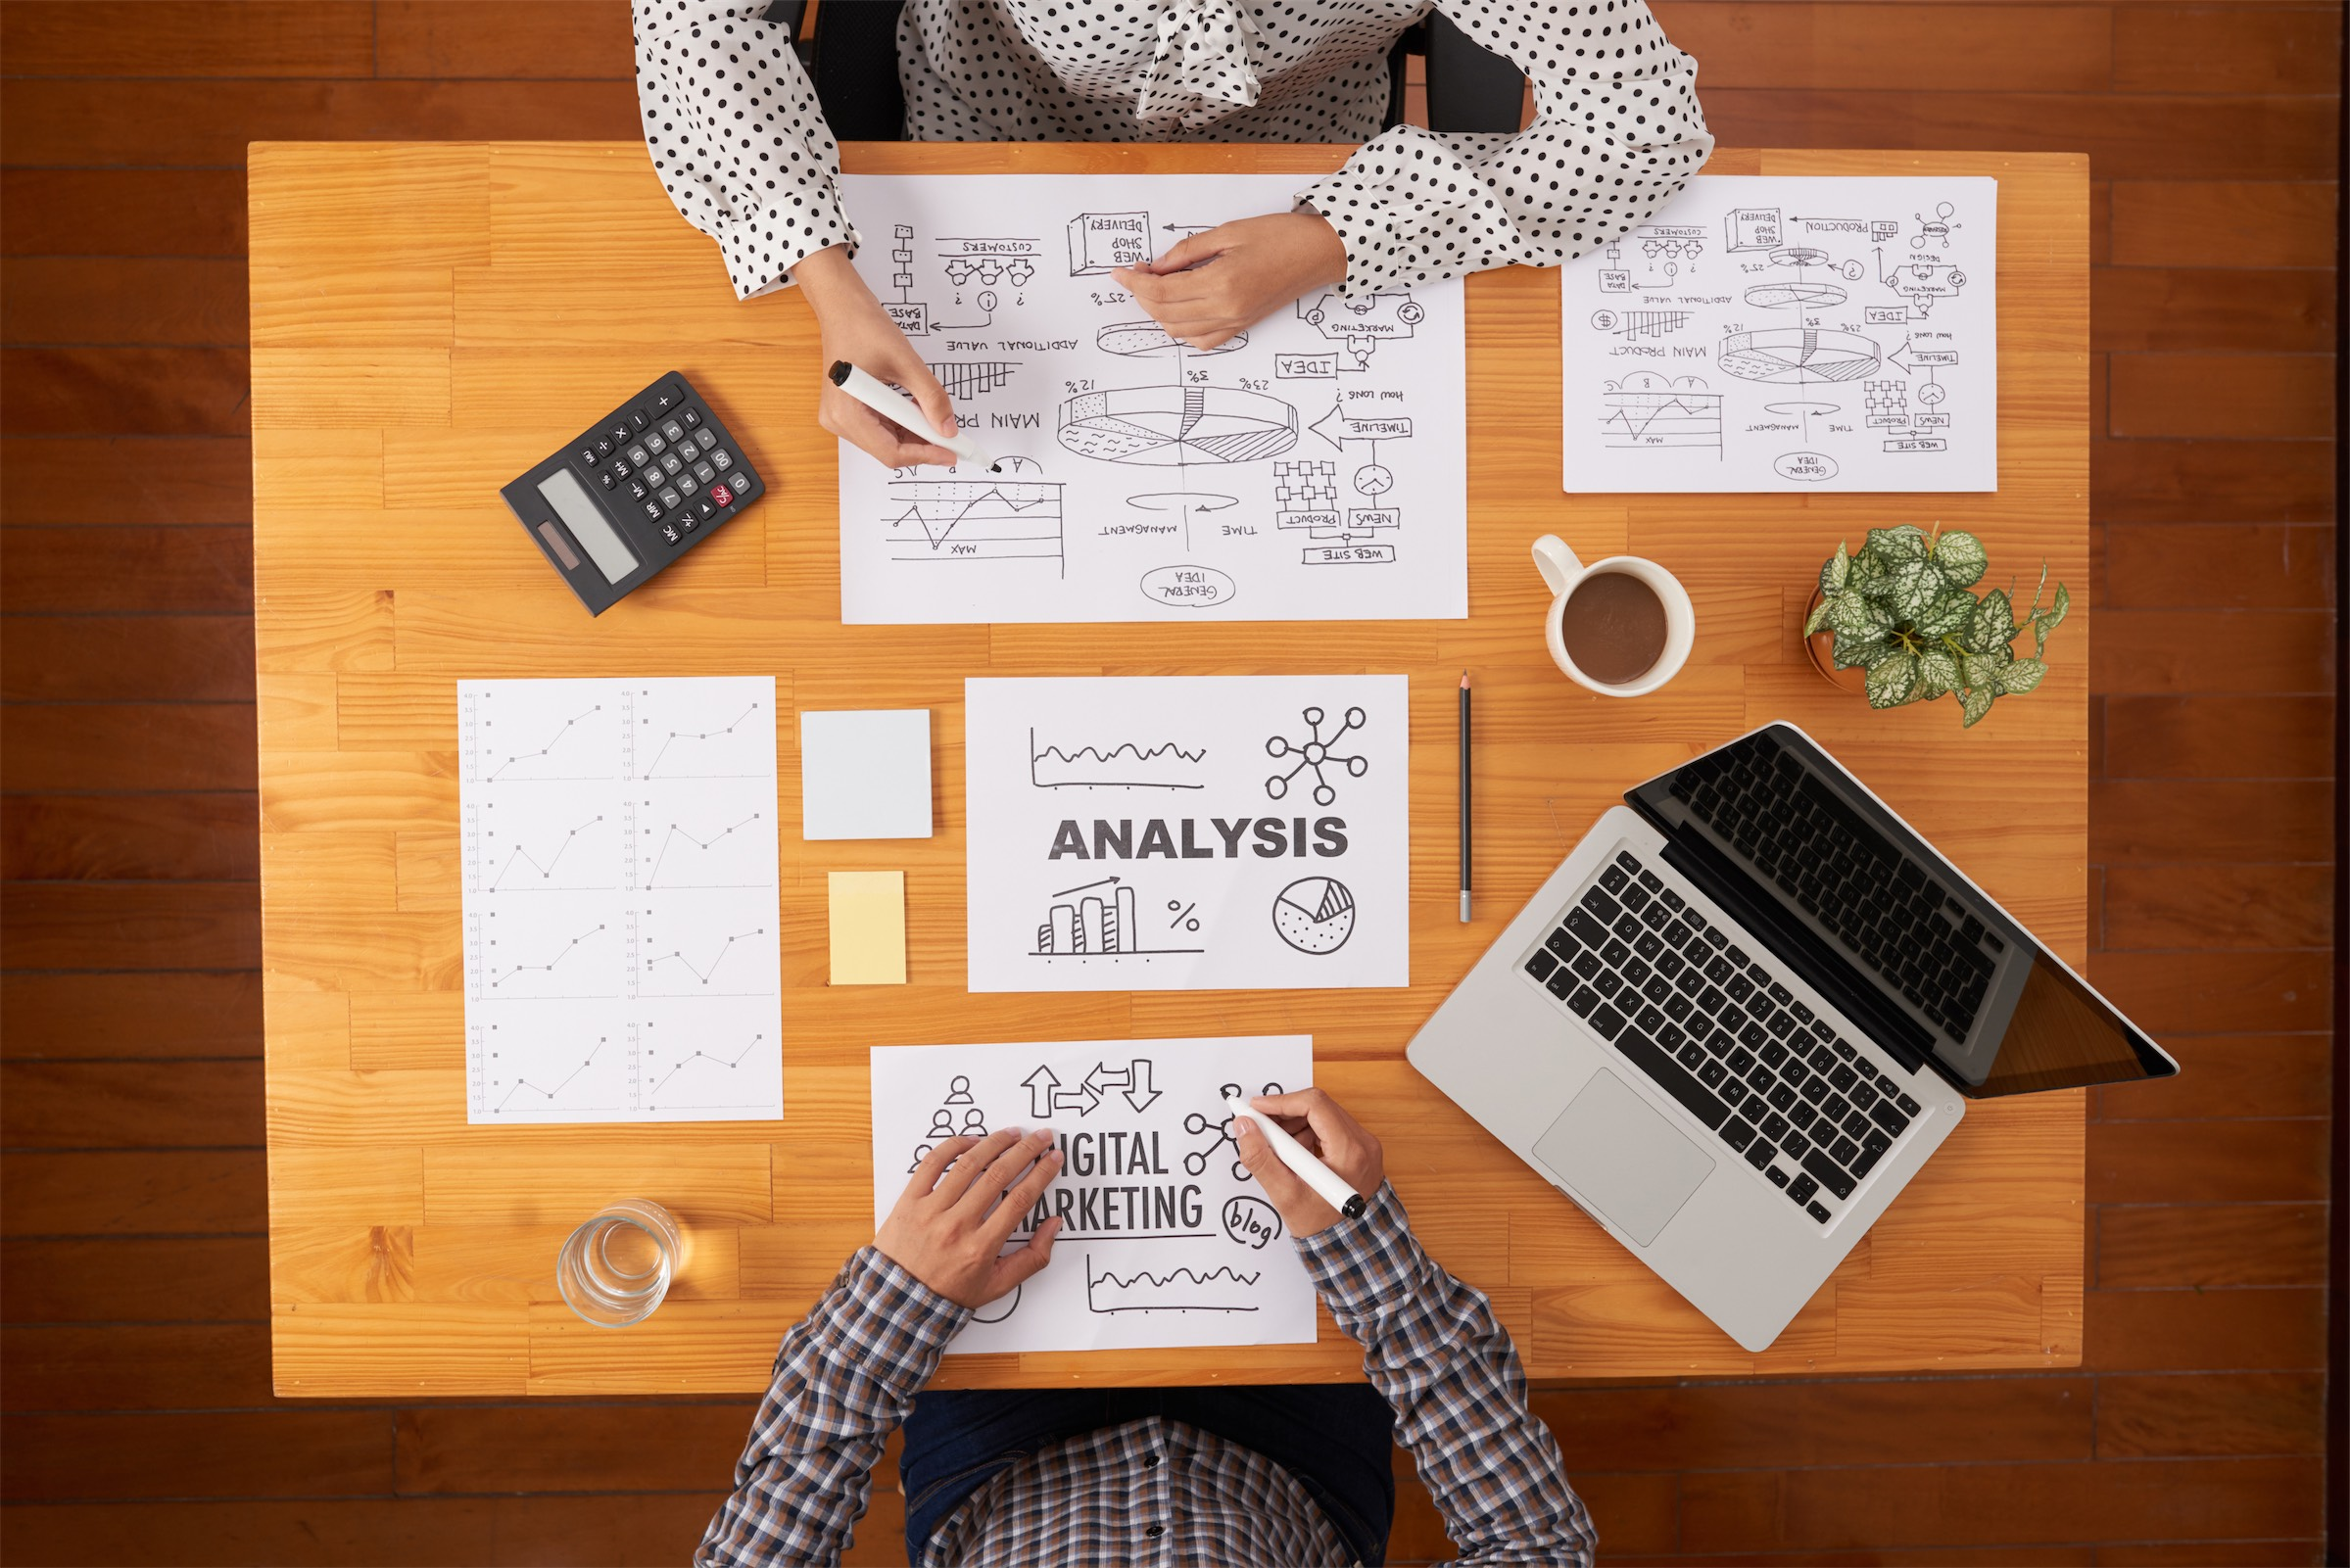 2 individuals crafting a content marketing strategy at an agency